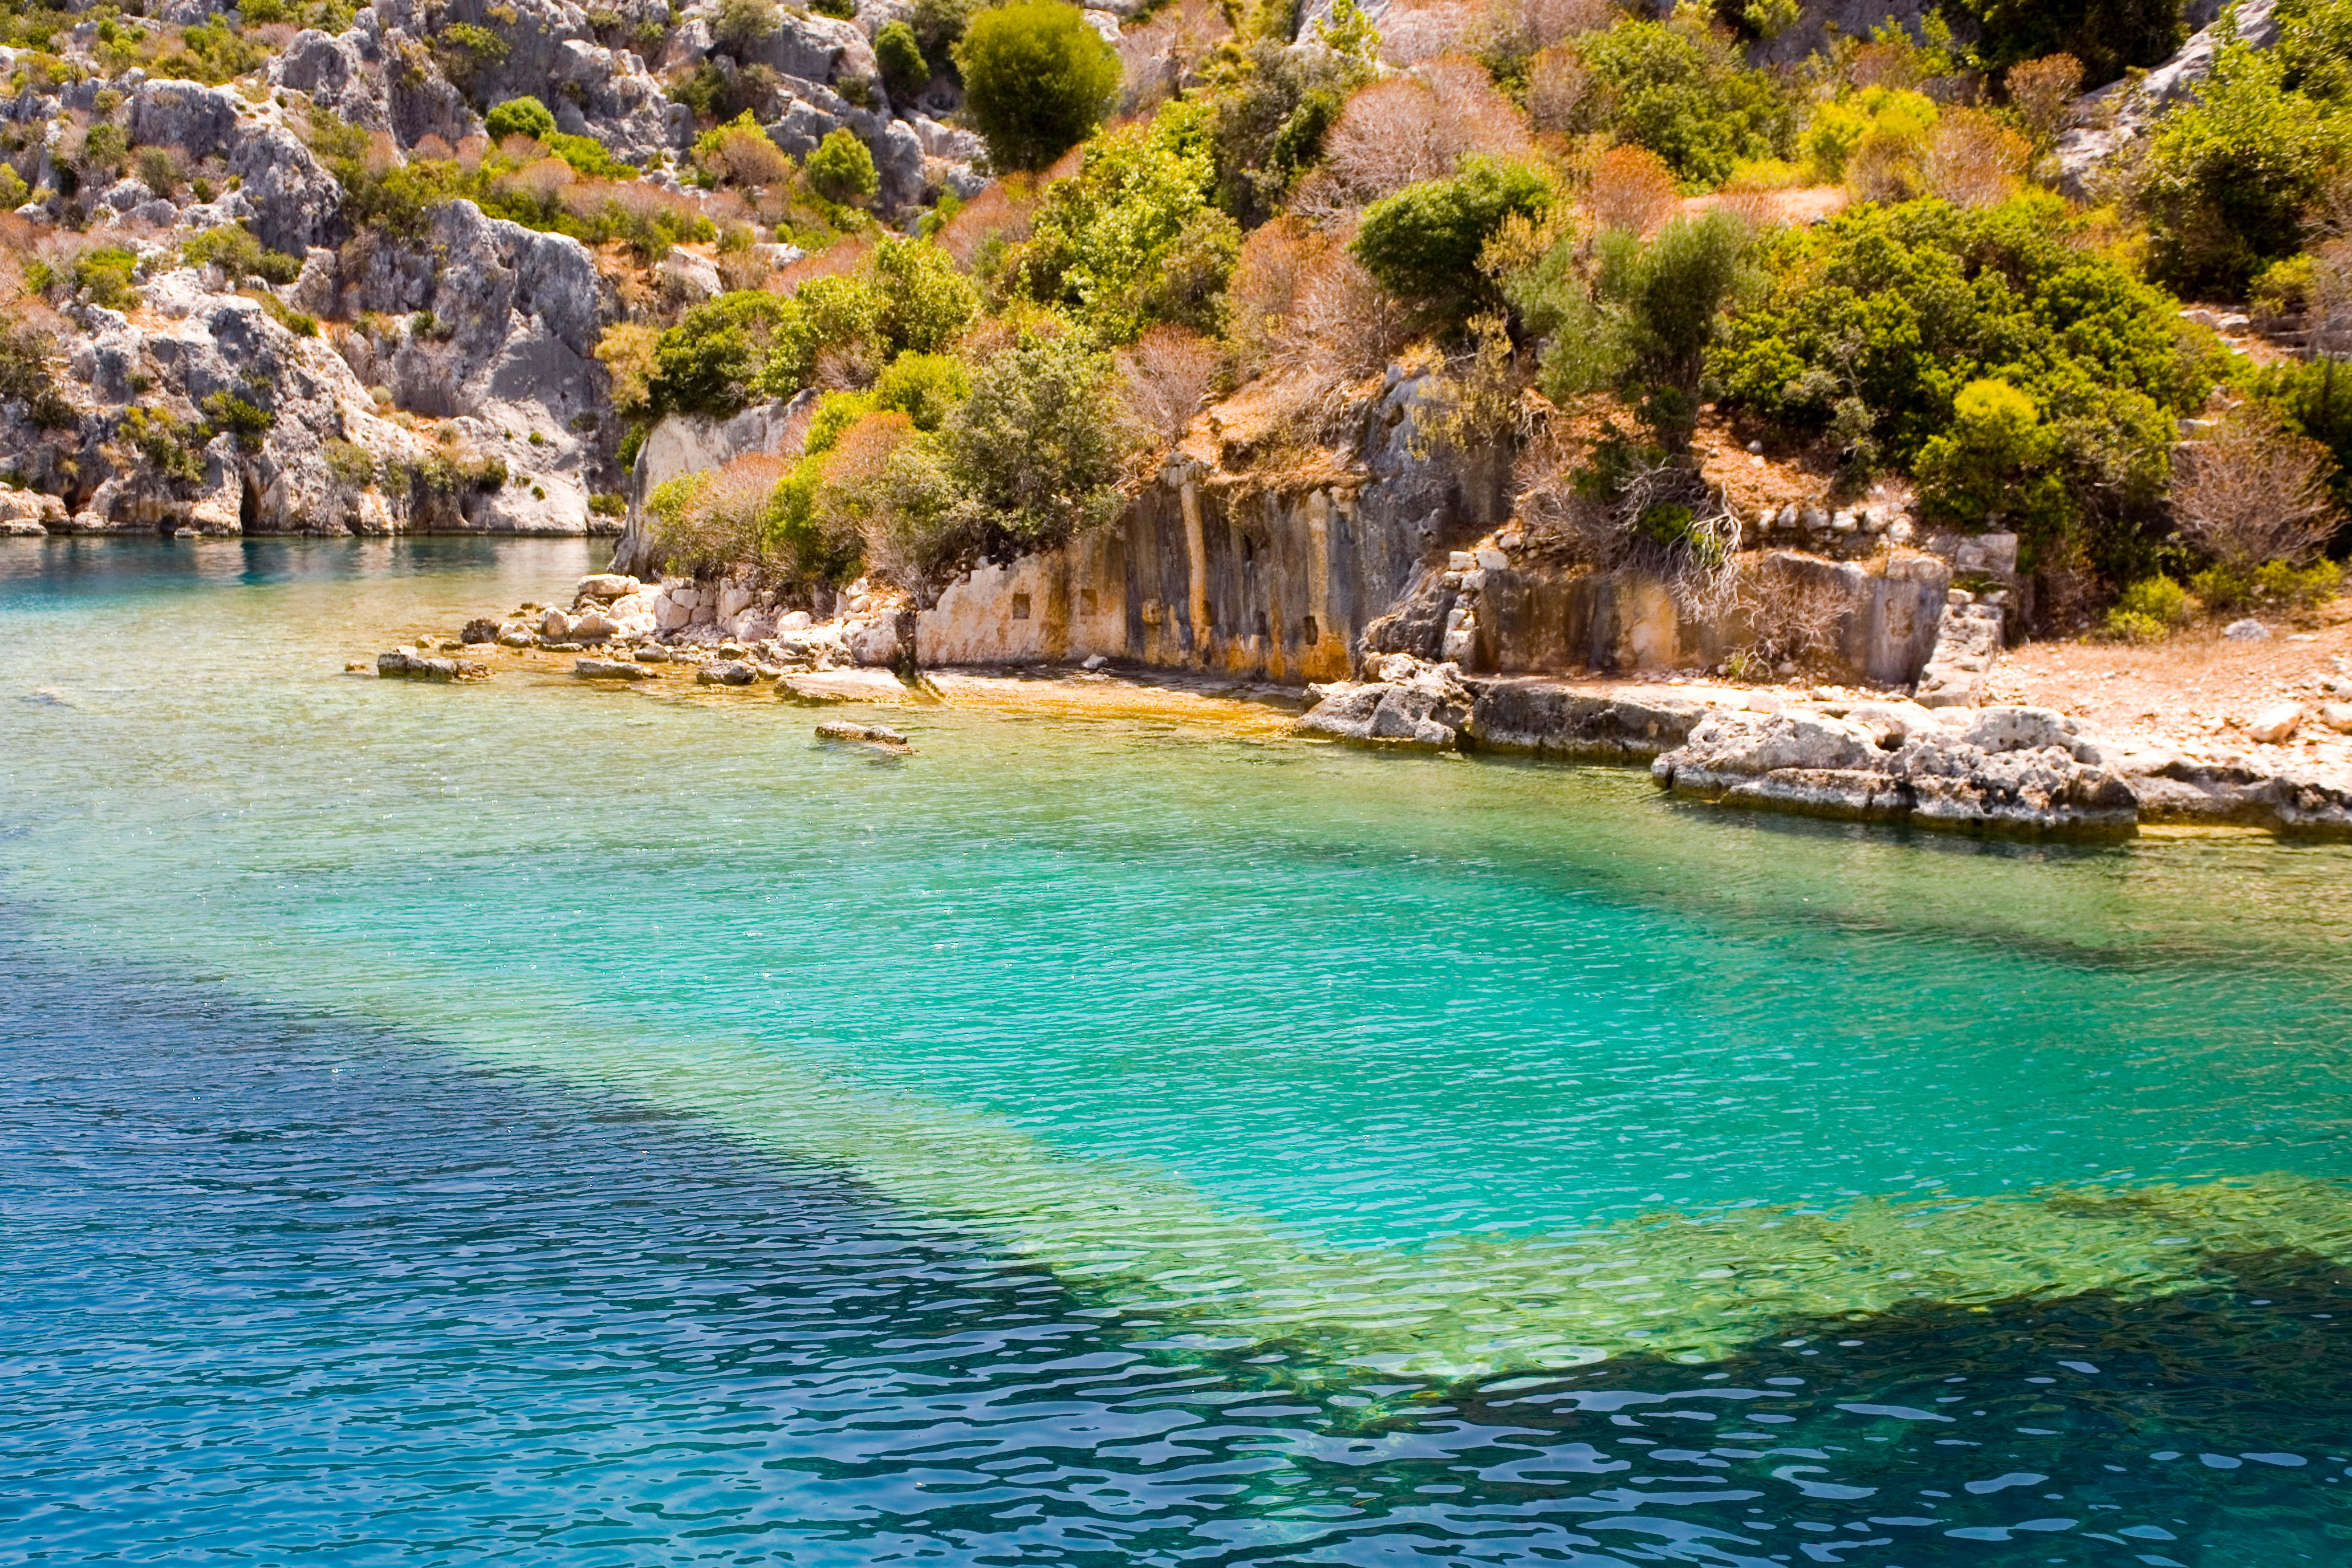 Divers may soon beging to explore the sunken city of Kekova